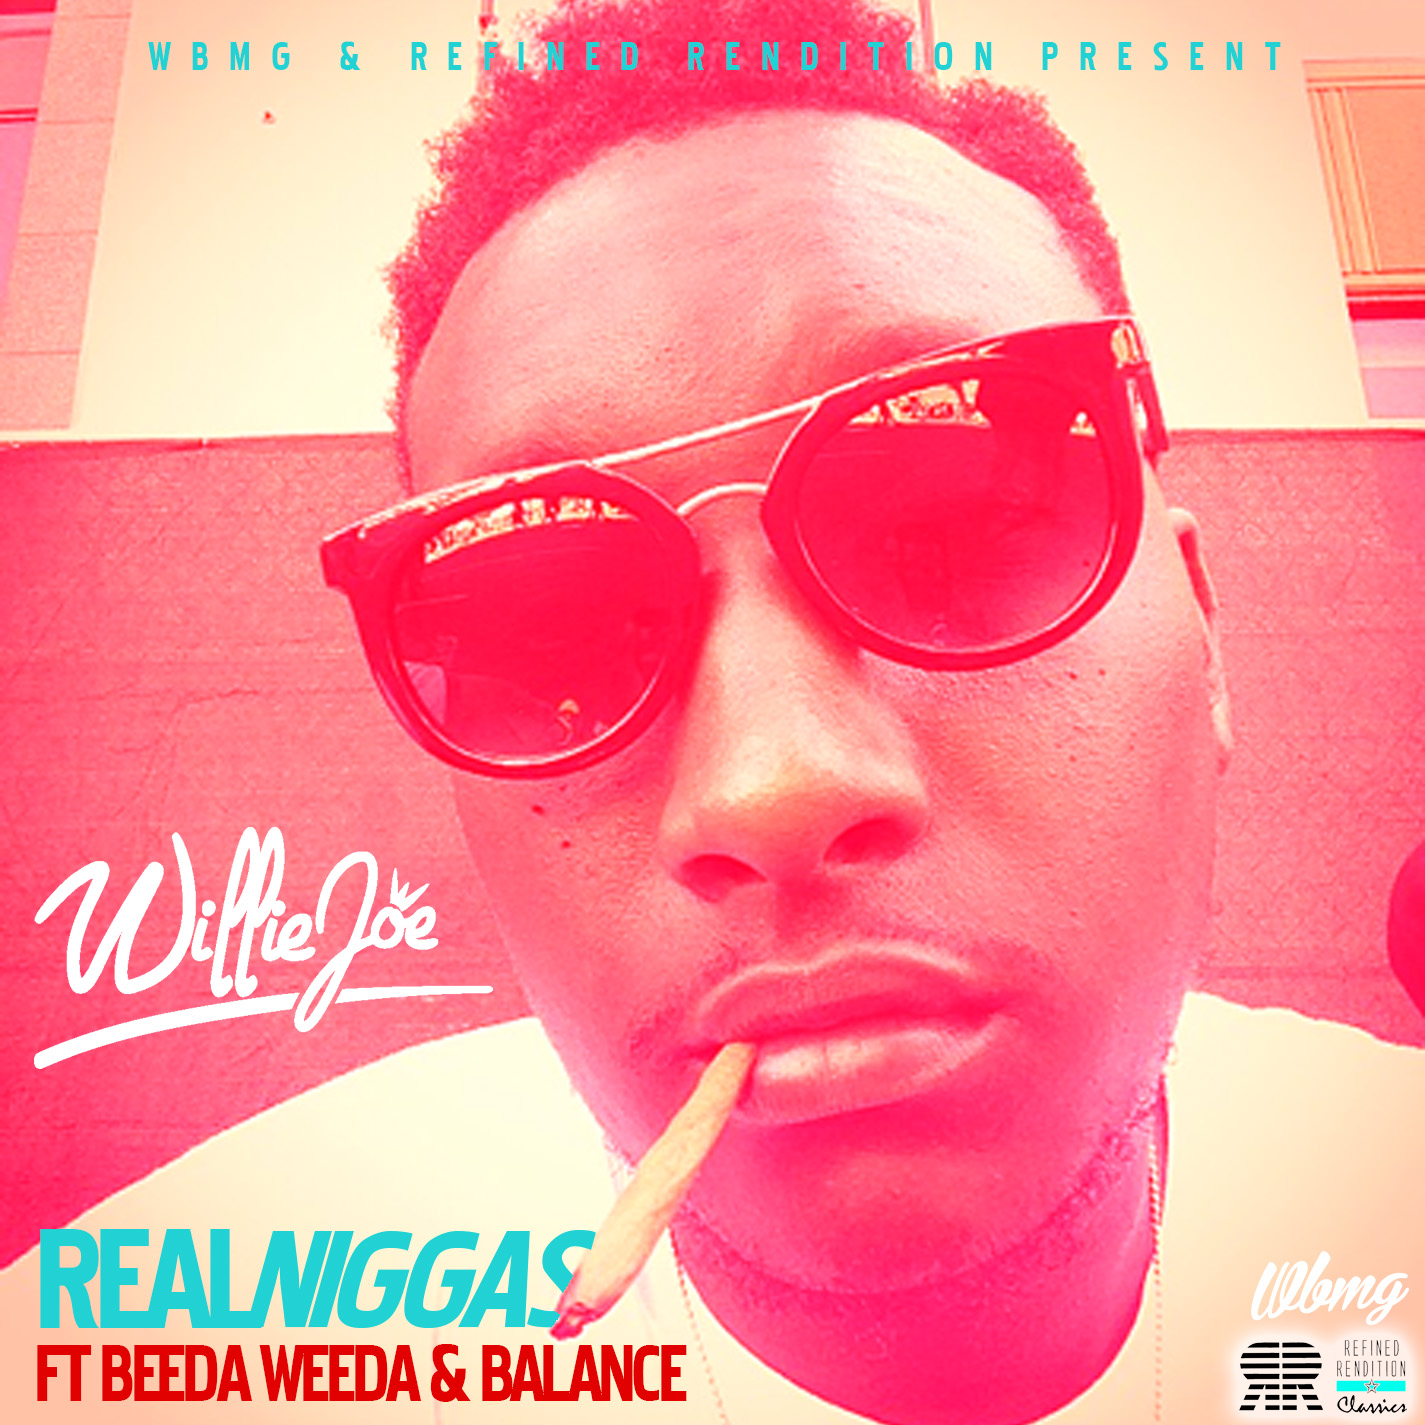 Willie Joe ft. Beeda Weeda & Balance - Real Niggas [Thizzler.com Exclusive]